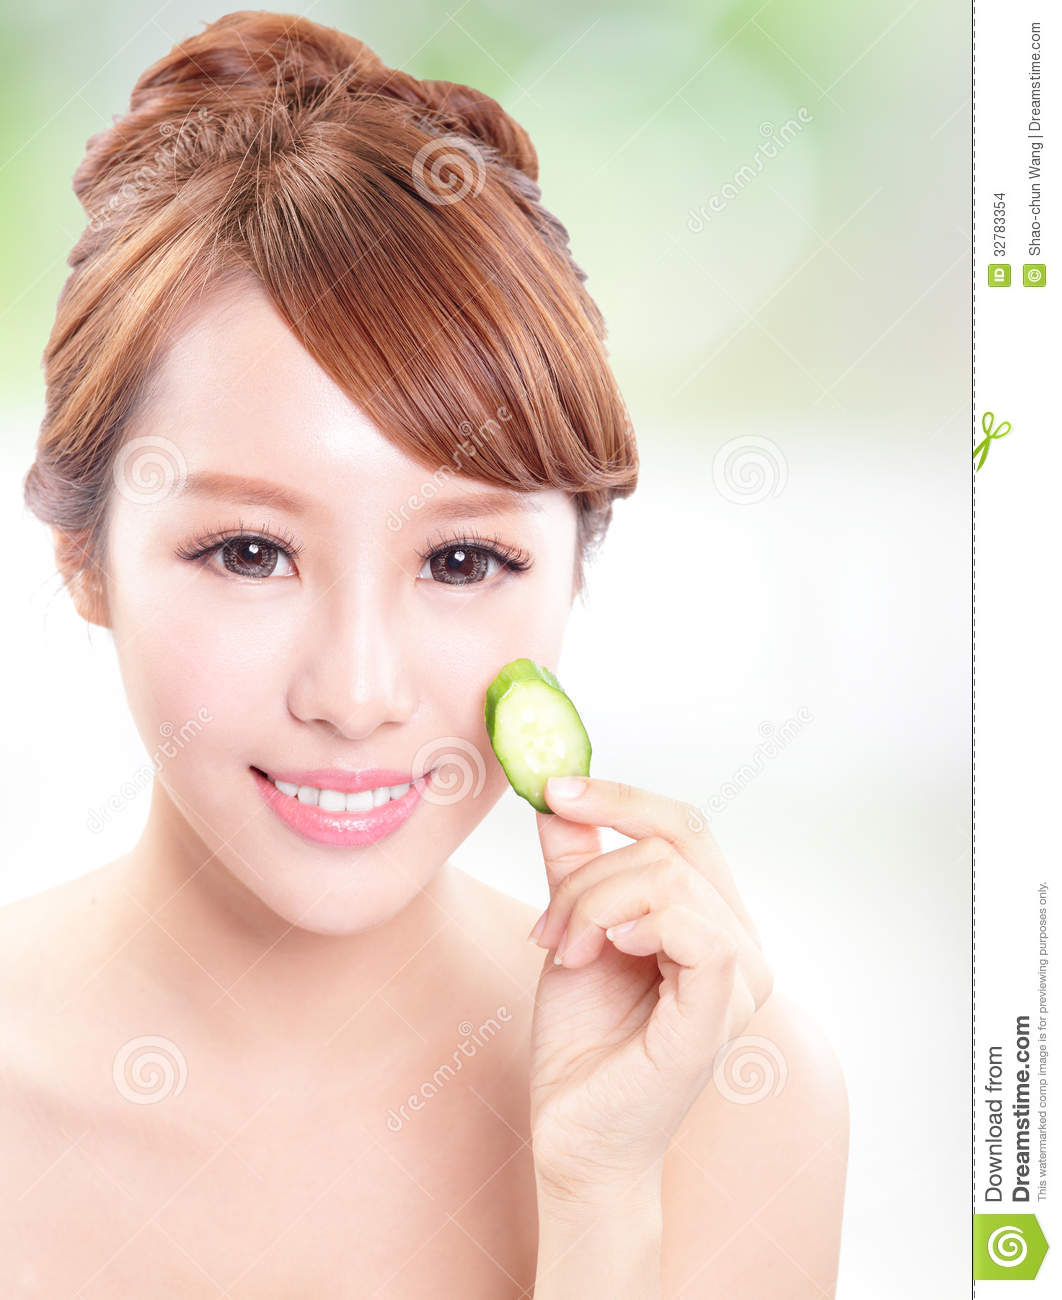 Skin Care Model: Beautiful Woman Holding Cucumber Slices On Face Stock